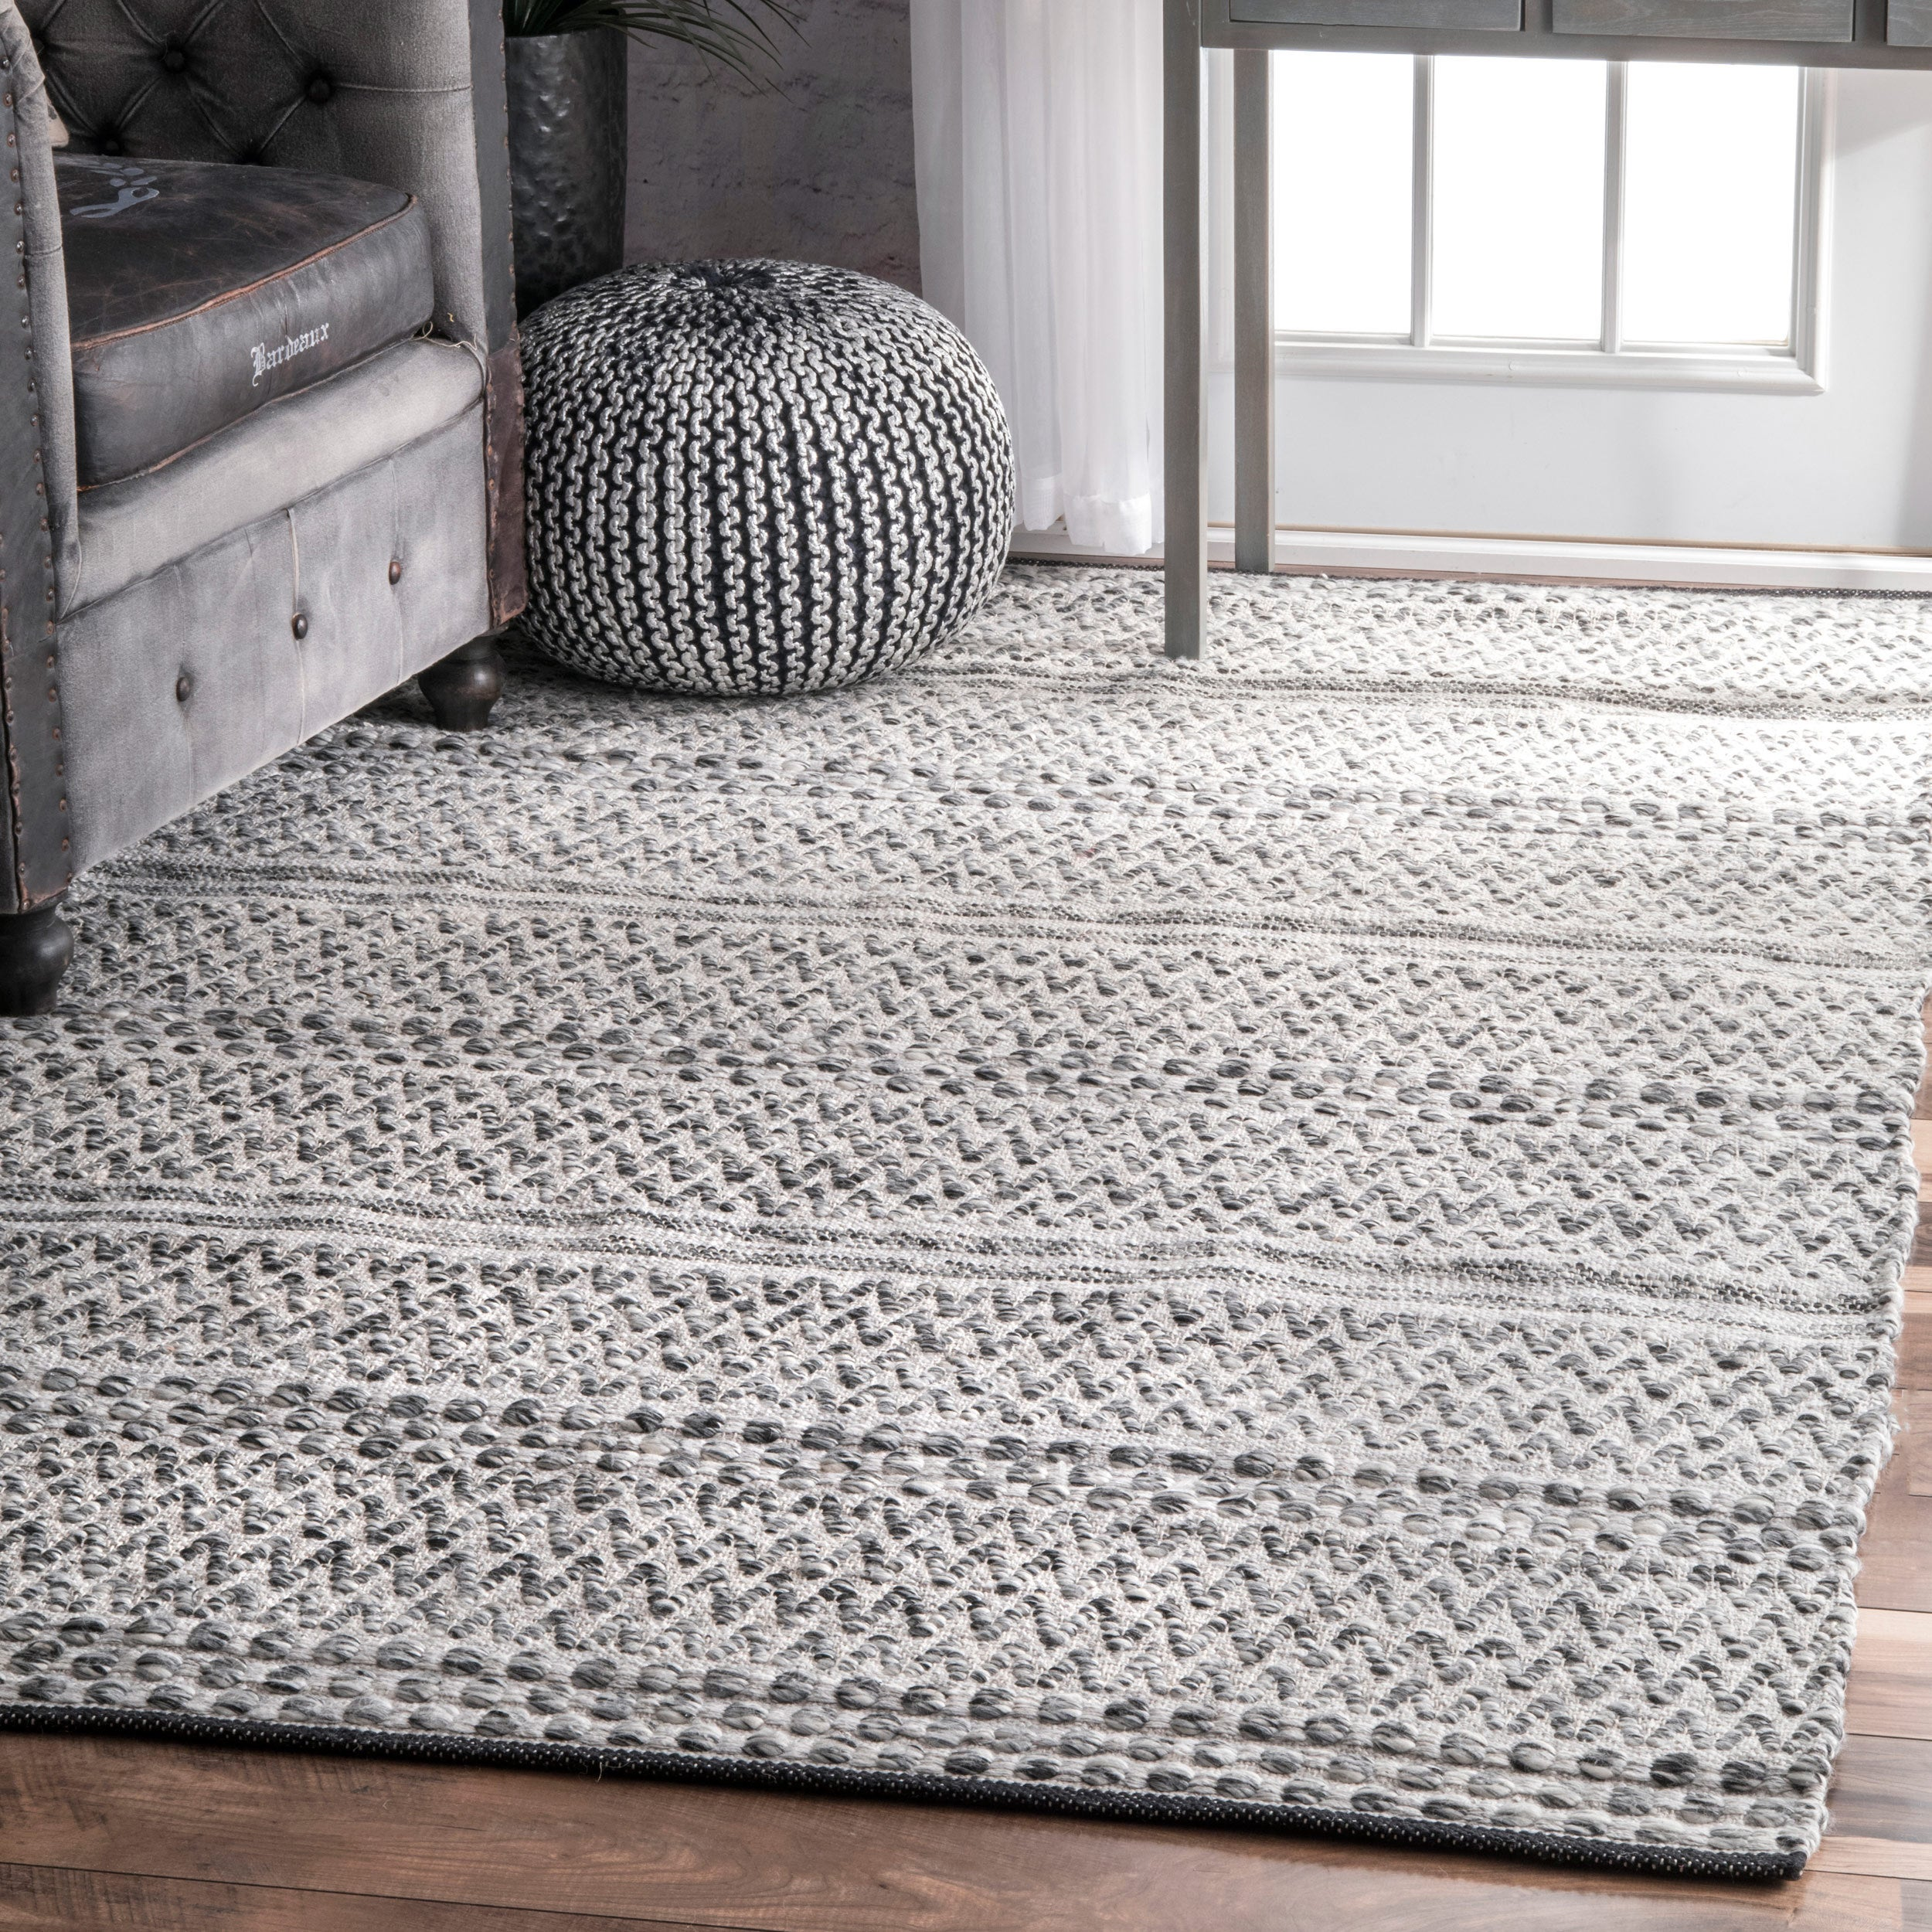 Nuloom Flatweave Chevron Striped Indoor Outdoor Patio Silver Rug 5 X 8 On Free Shipping Today Com 14416730